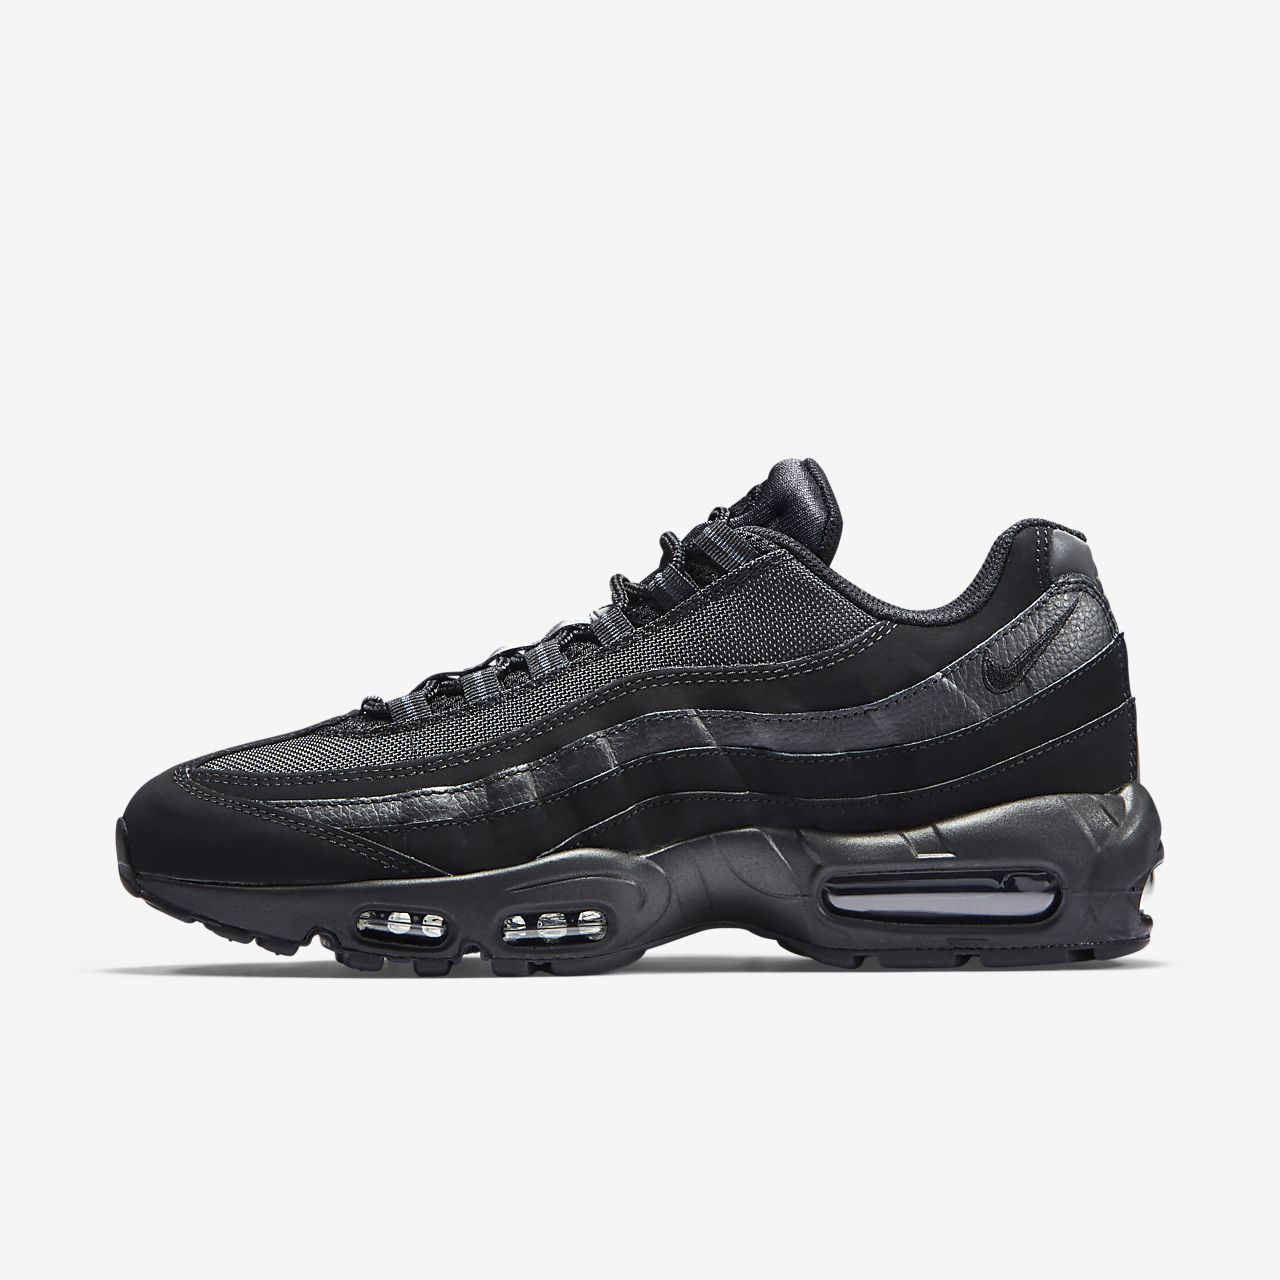 los angeles fede7 4b008 ... Nike Air Max 95 Men s Shoe